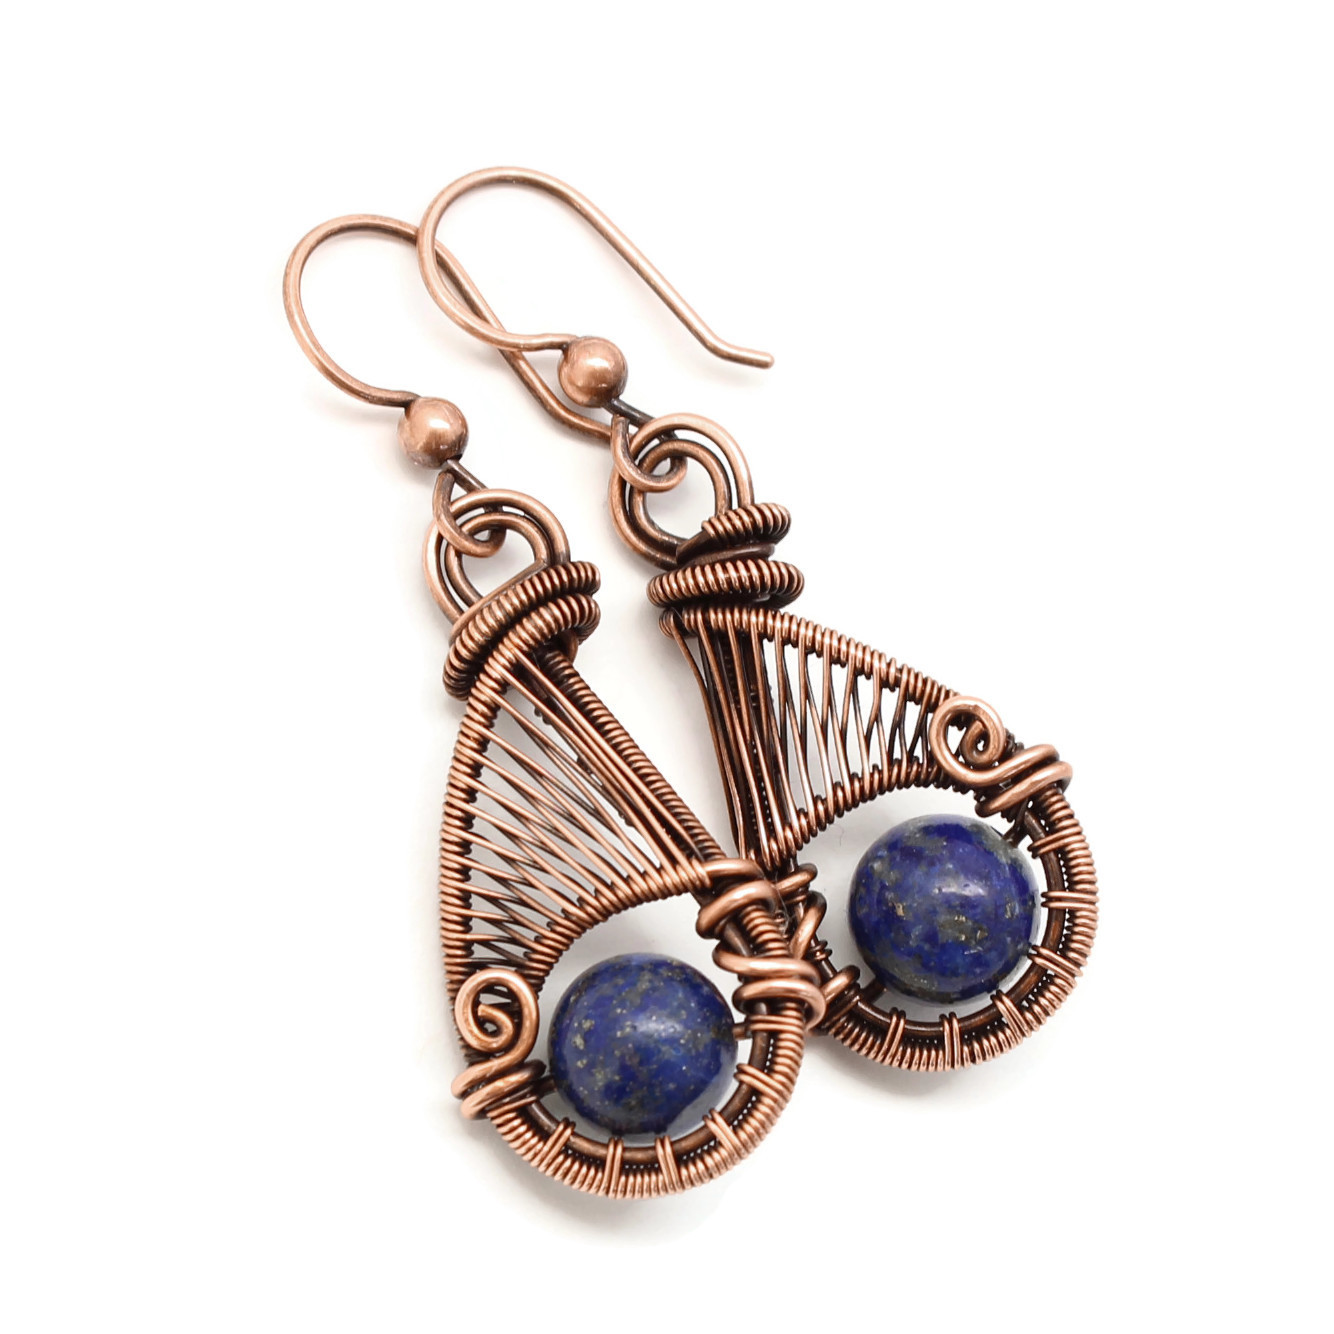 Copper wire wrap earrings with lapis lazuli gemstones.